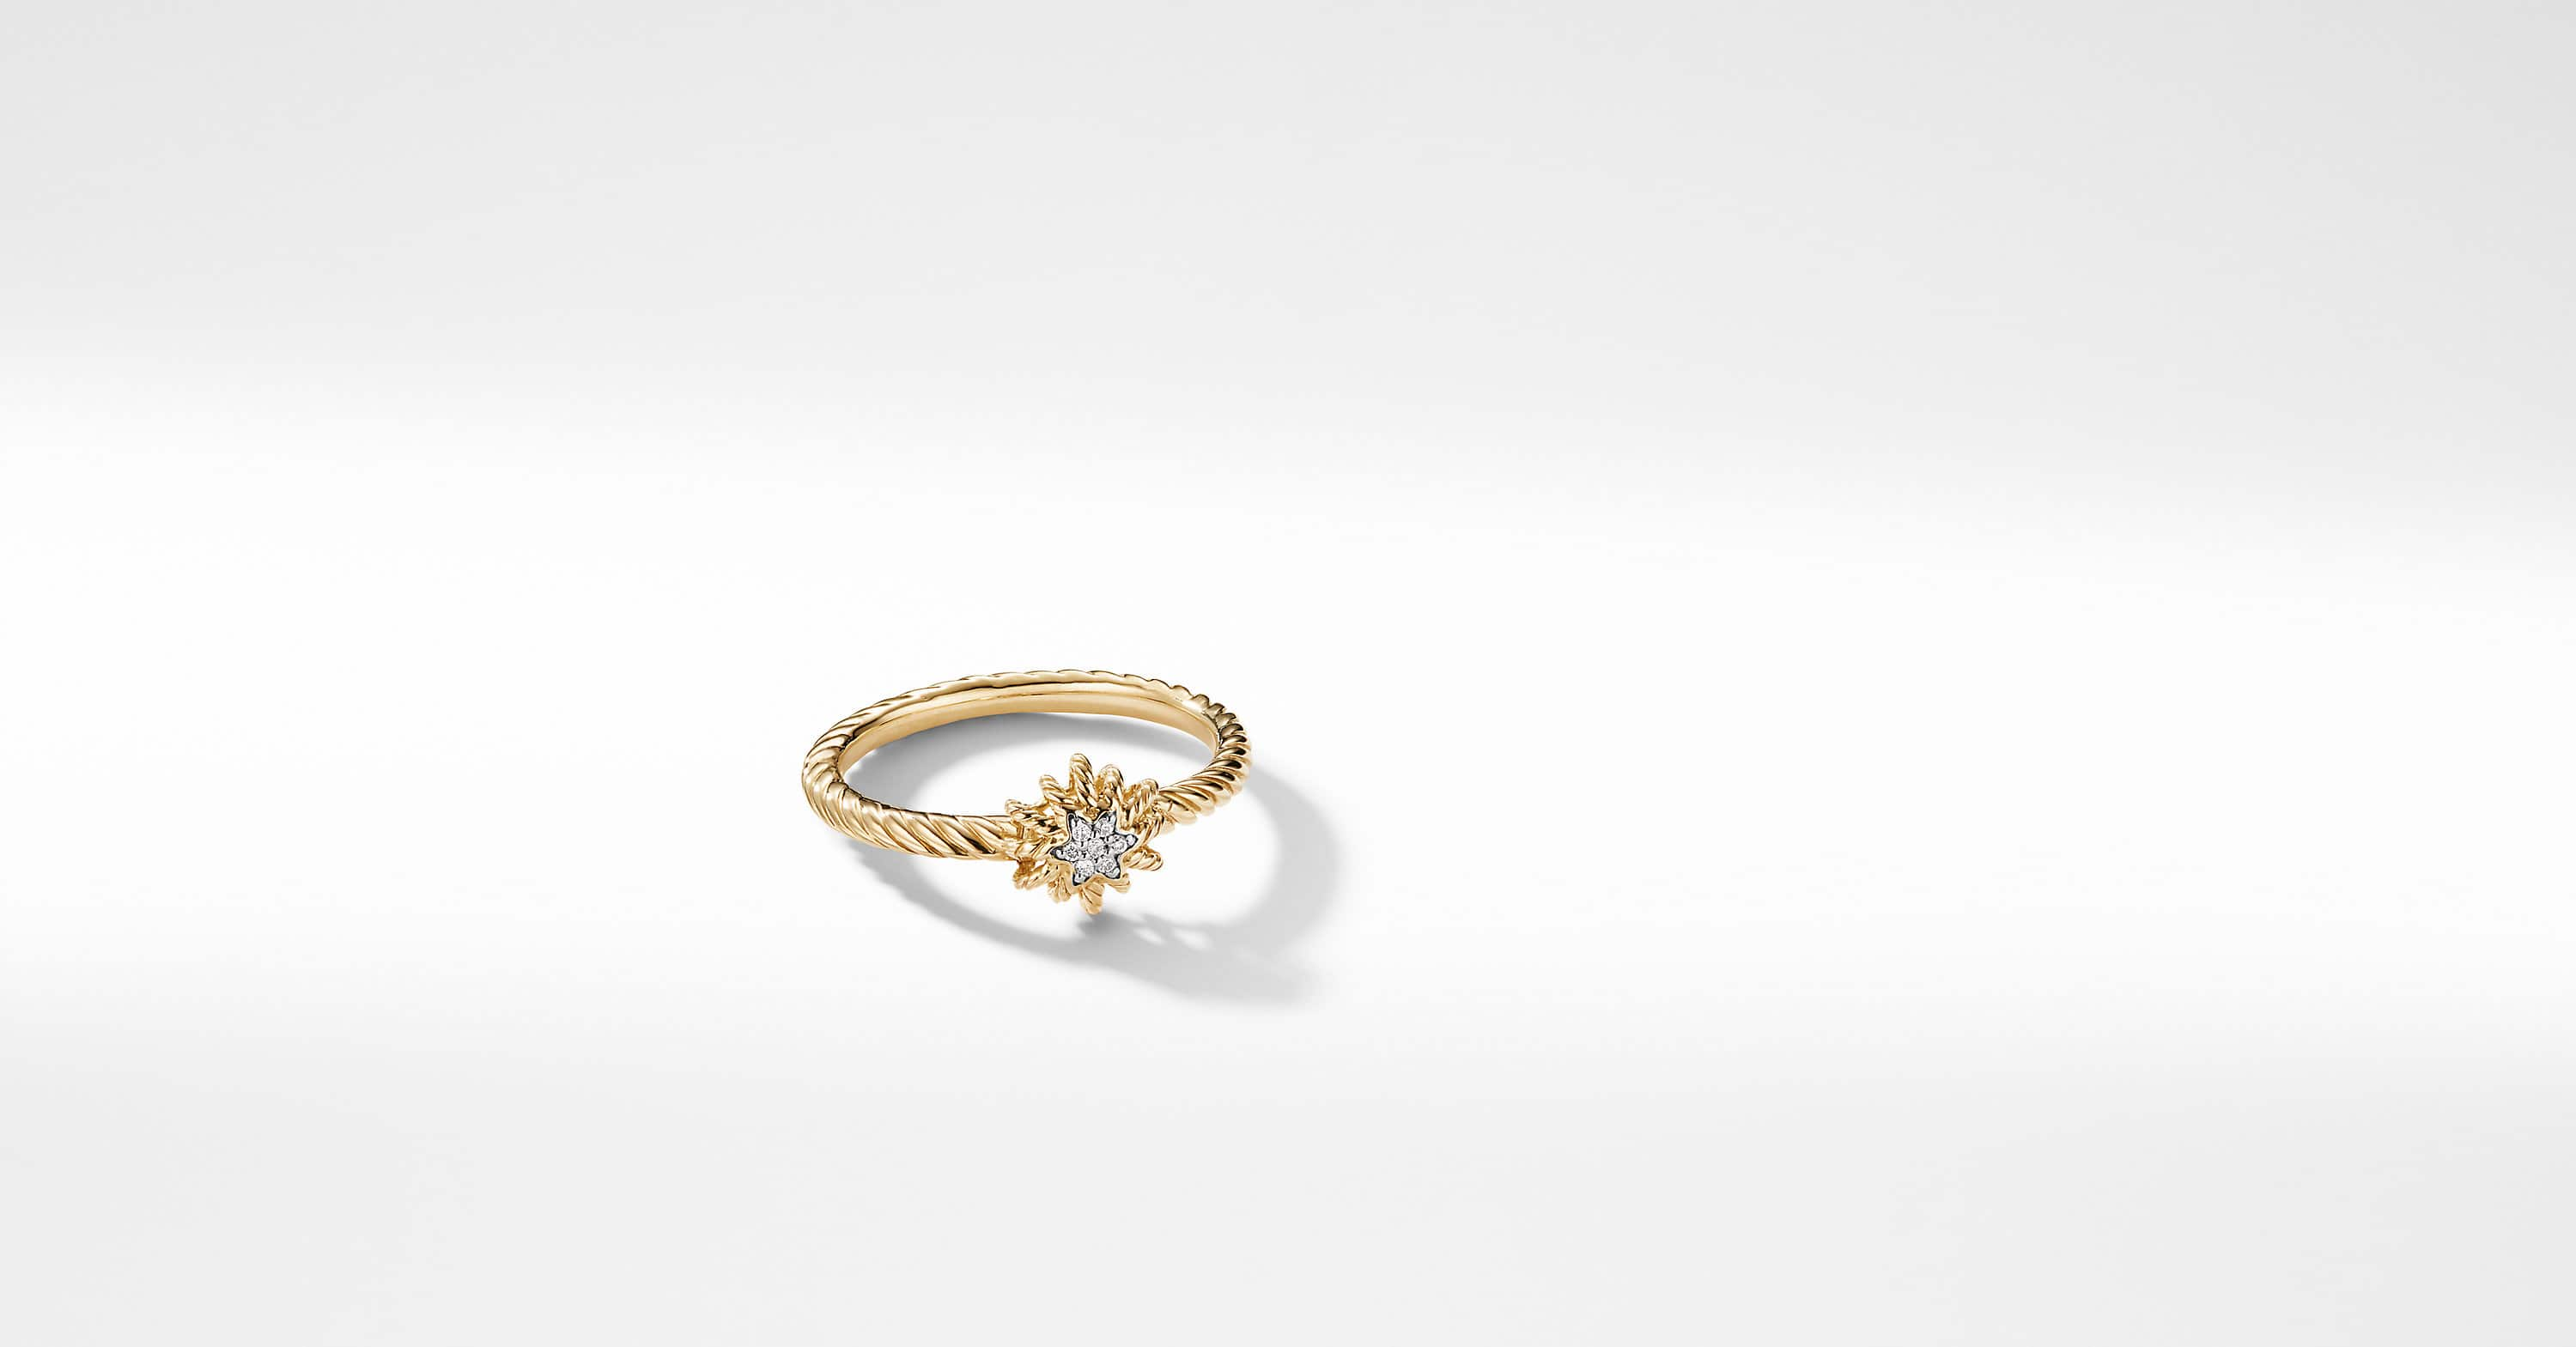 Small Starburst Ring with Diamond in 18K Gold